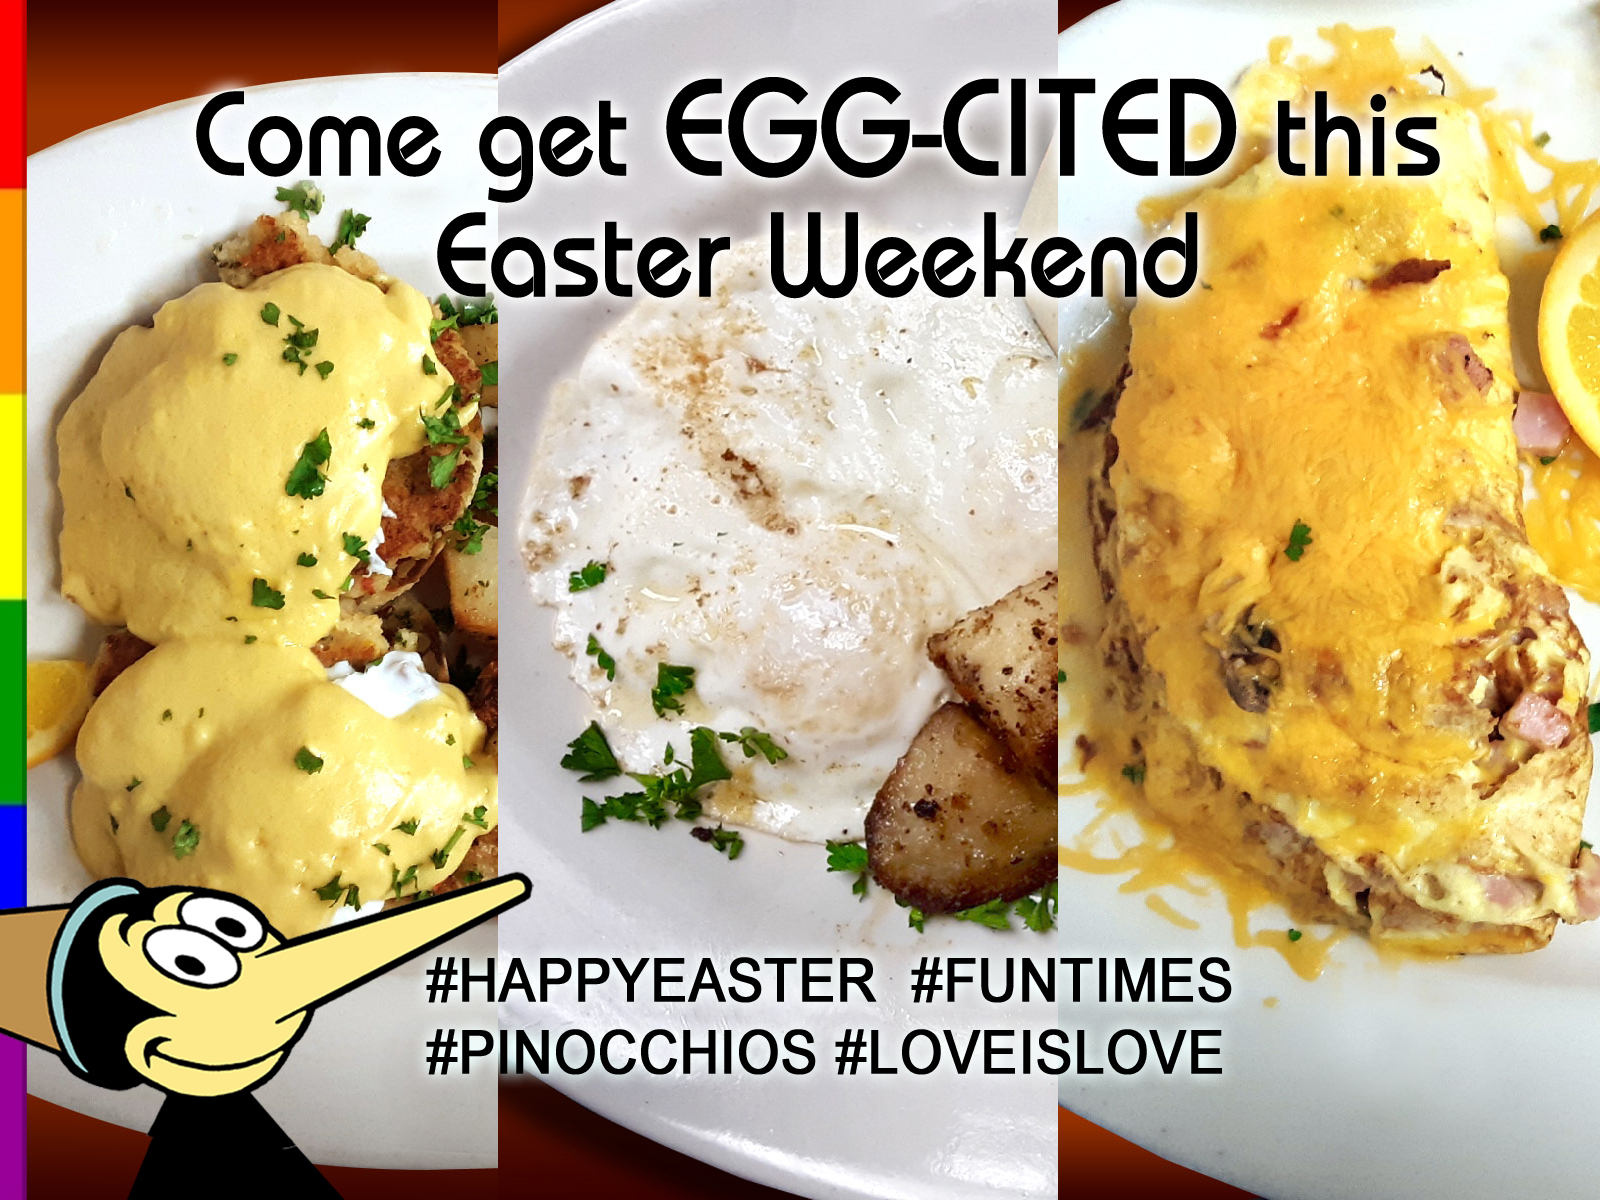 Come get EGG-CITED this Easter Weekend!